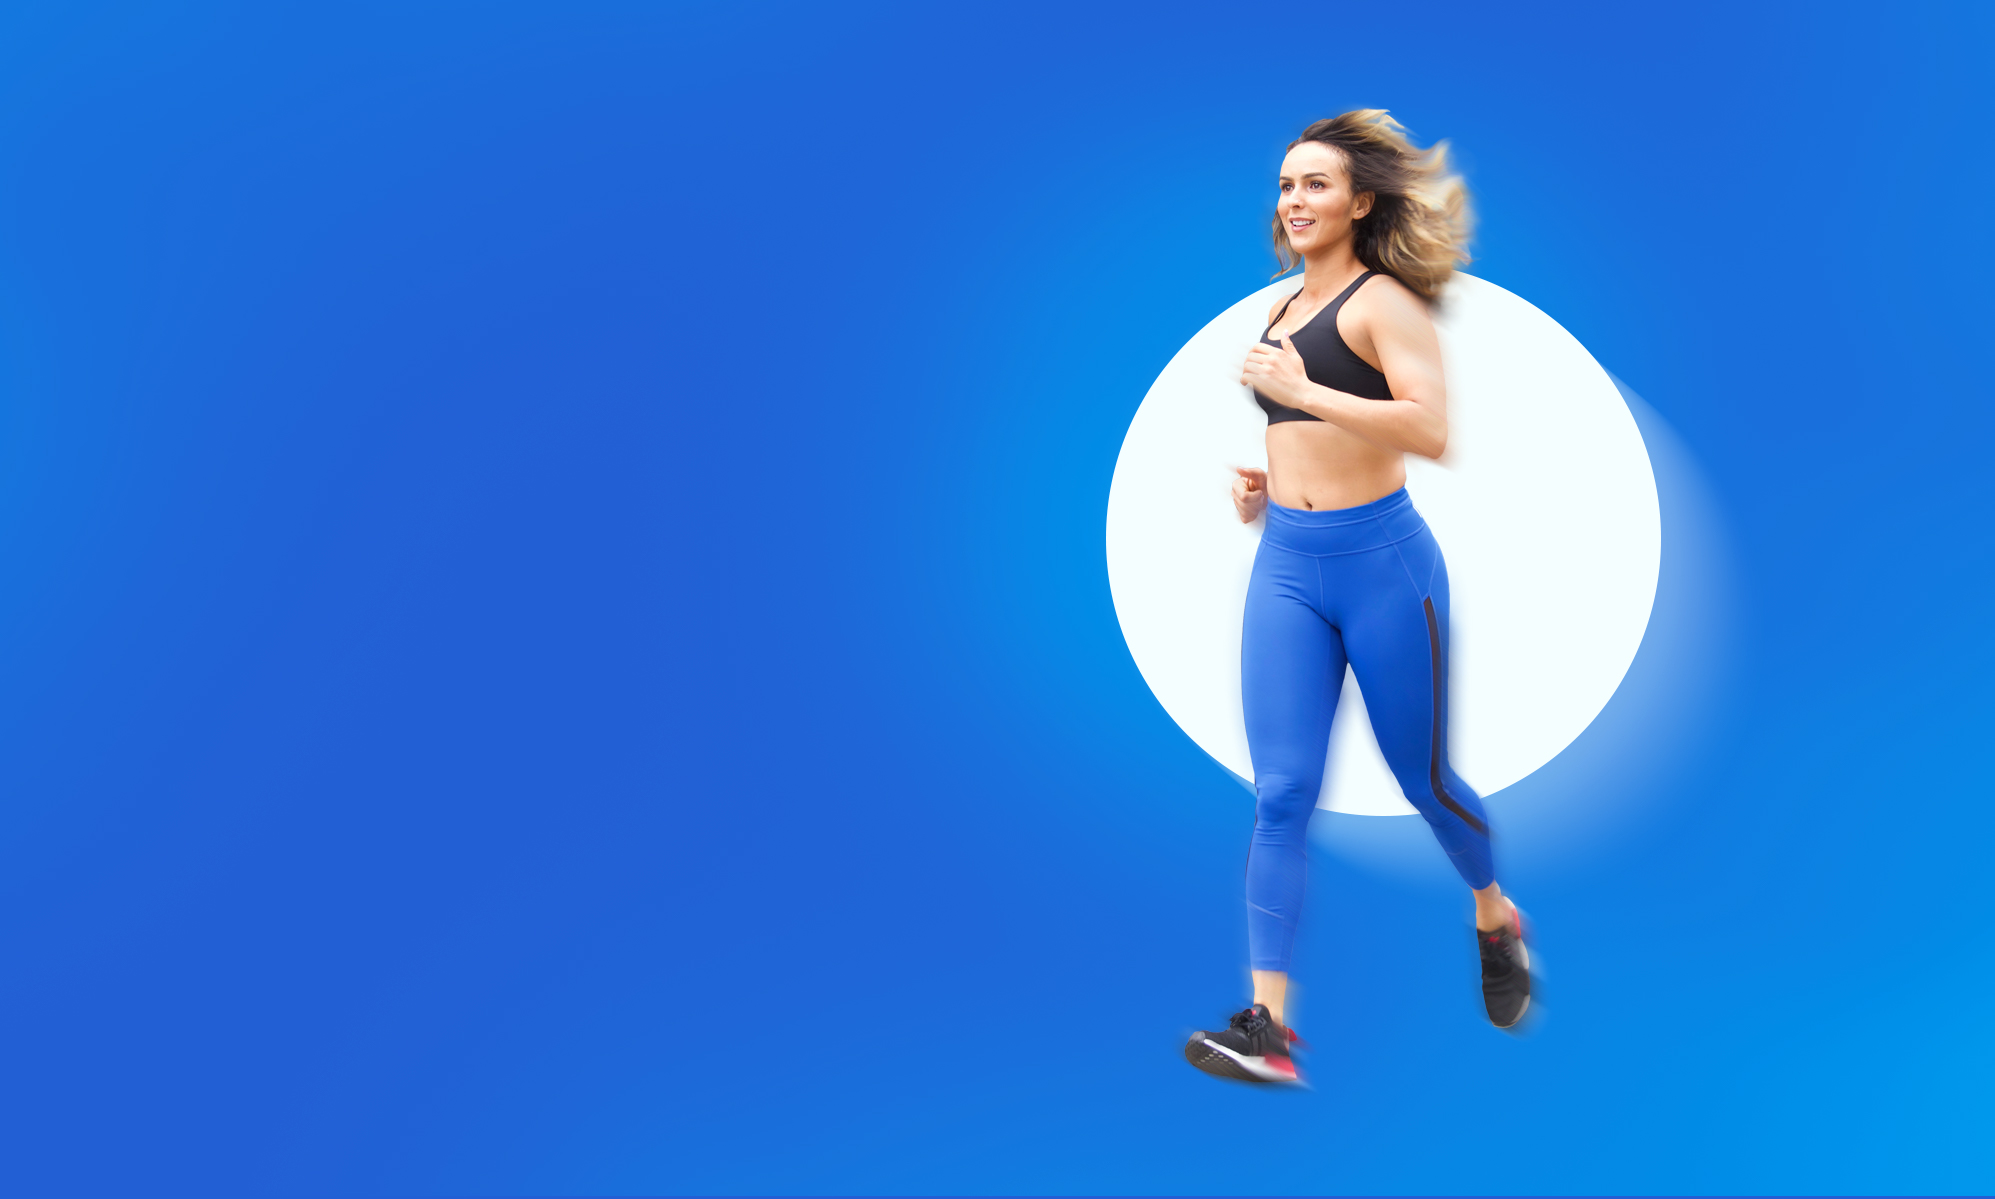 Moroccan woman on blue background running